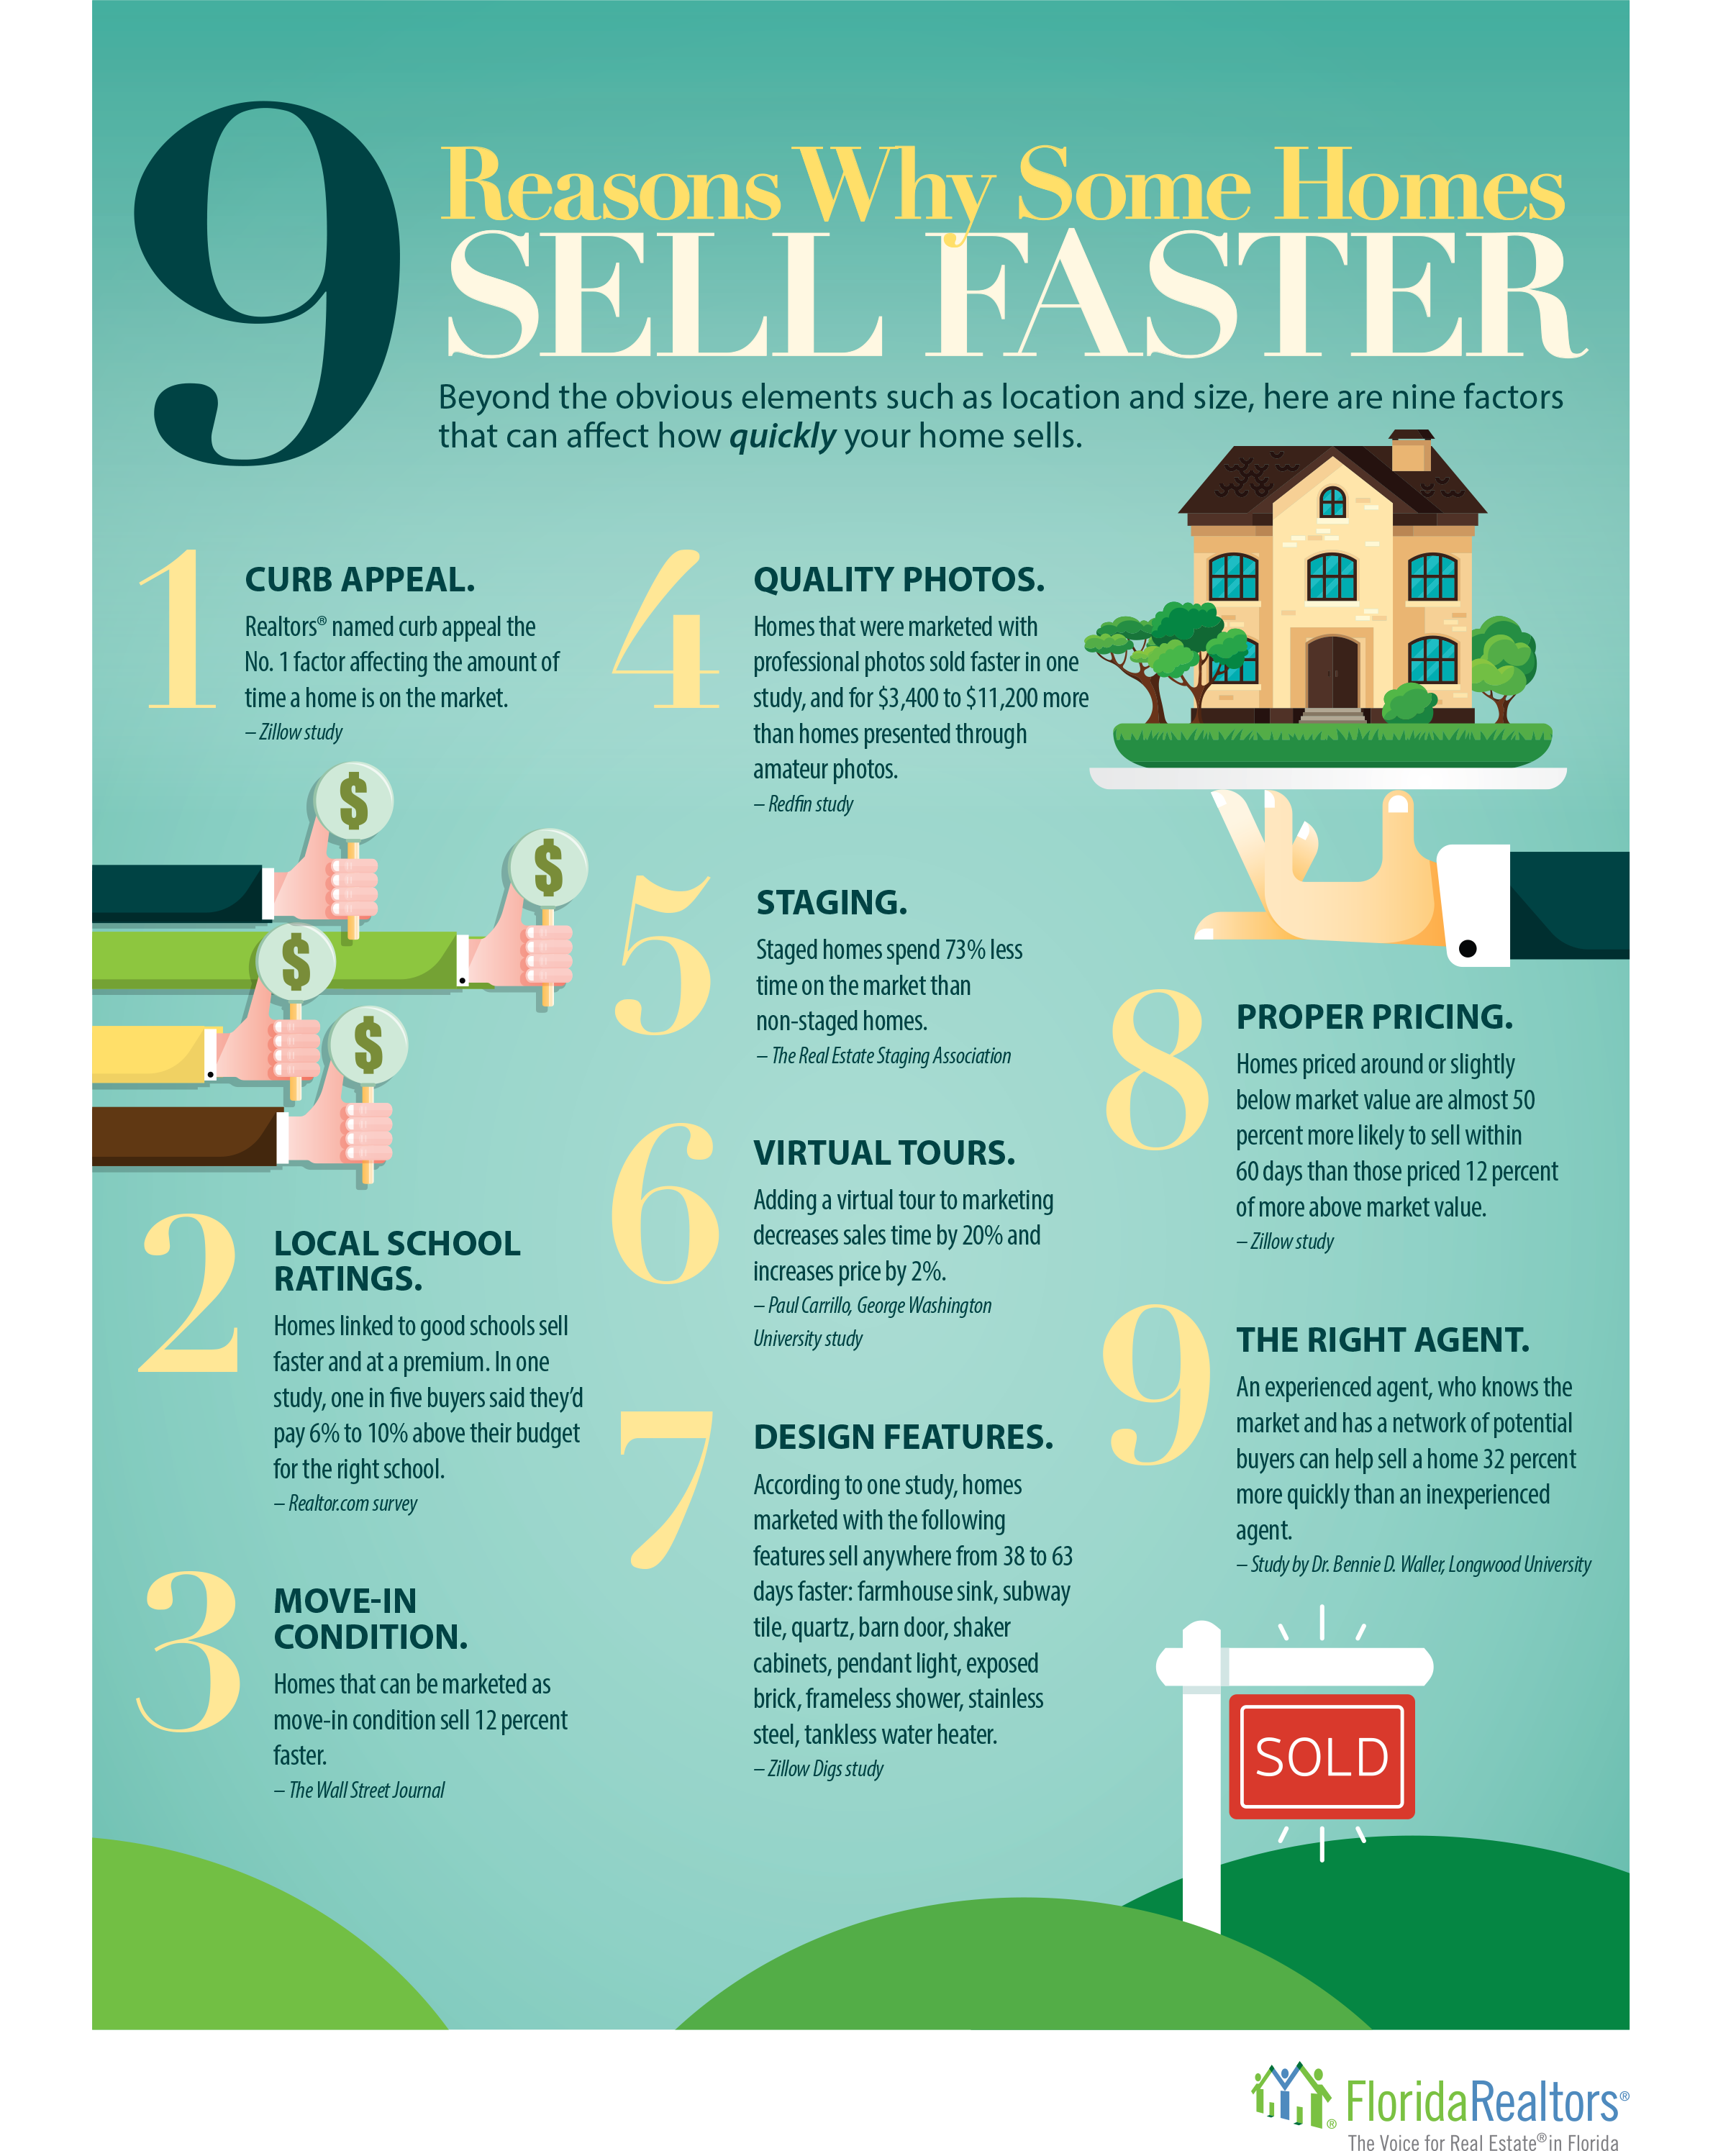 Reasons some homes sell faster